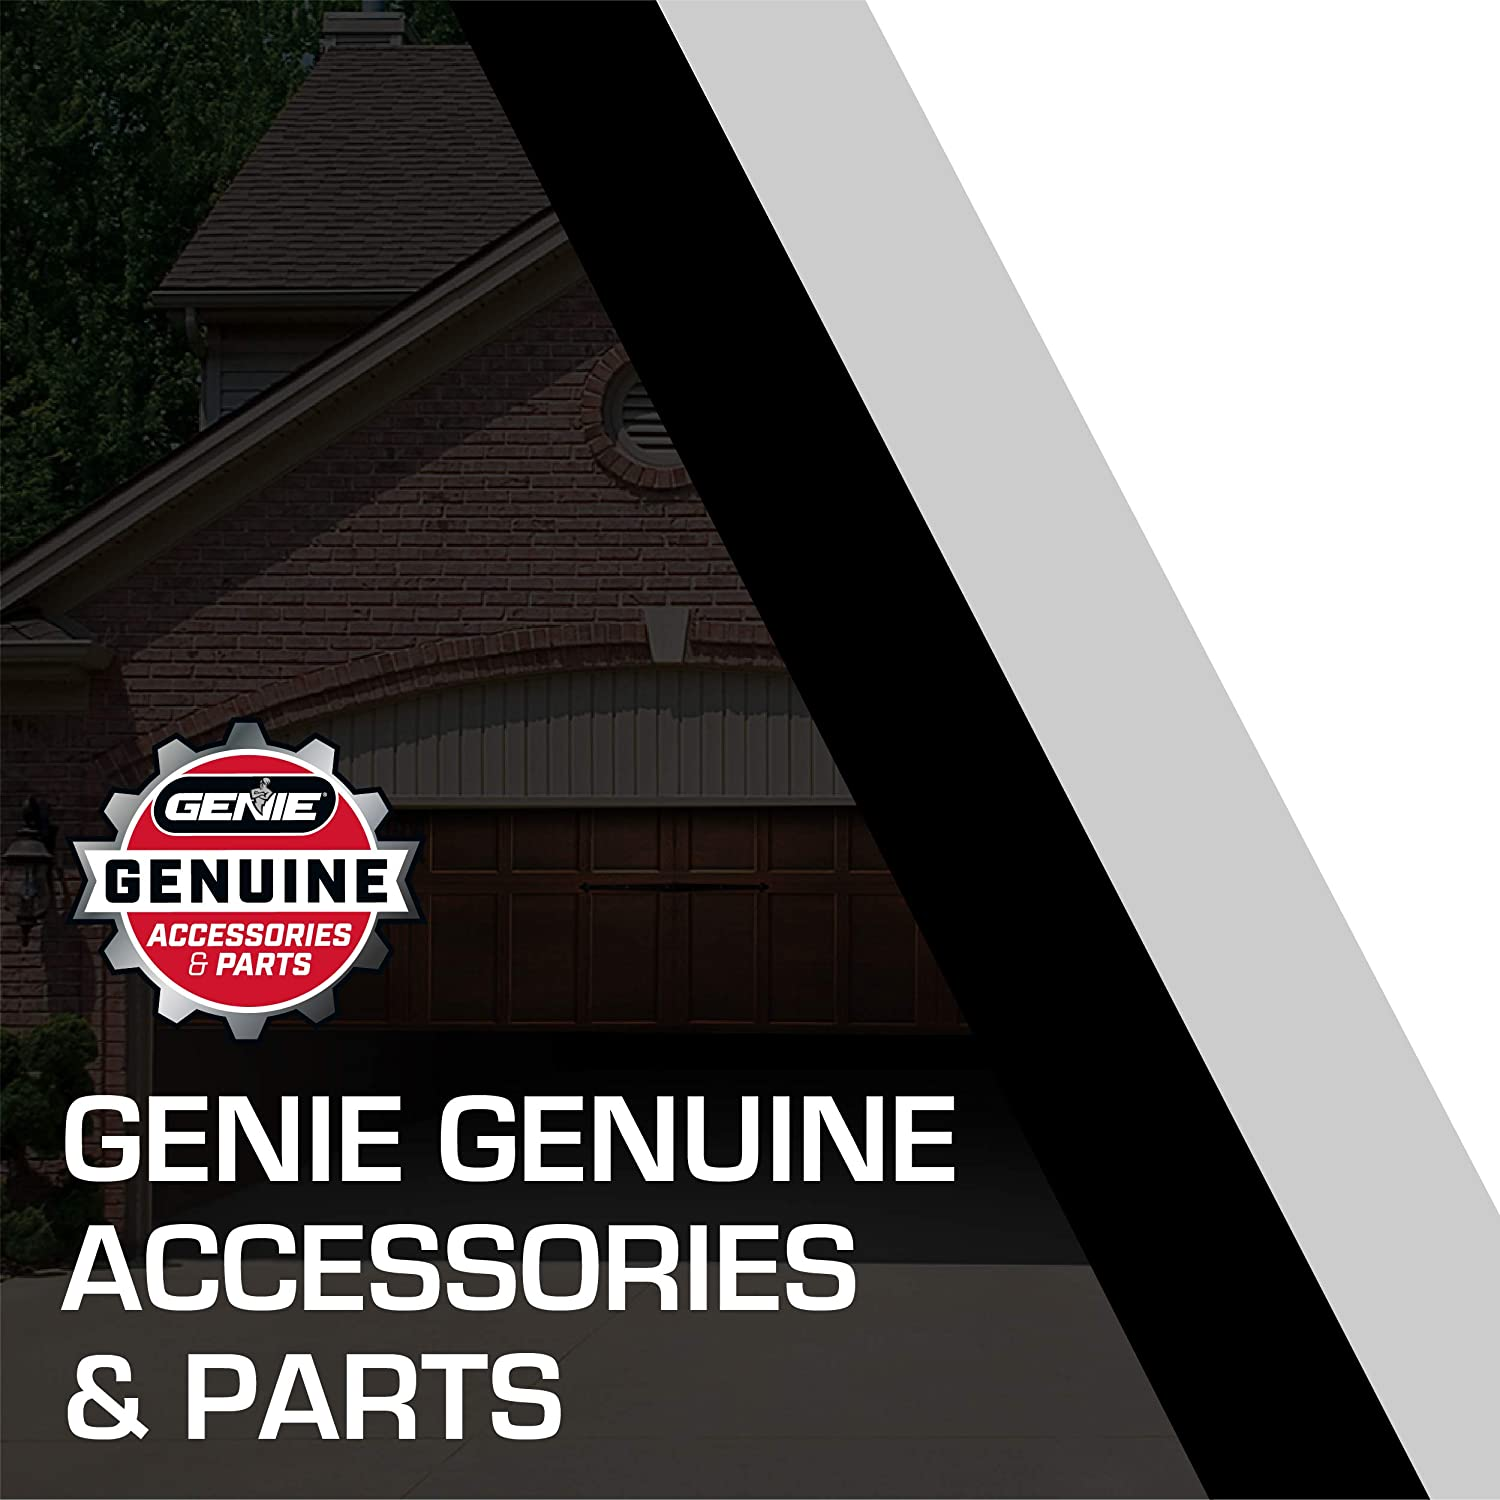 Genie Single Button Garage Door Opener Remotes Each Remote Compatibile Only with Genie Intellicode Garage Door Openers Model G1T-New 2 Pack - Safe /& Secure Access